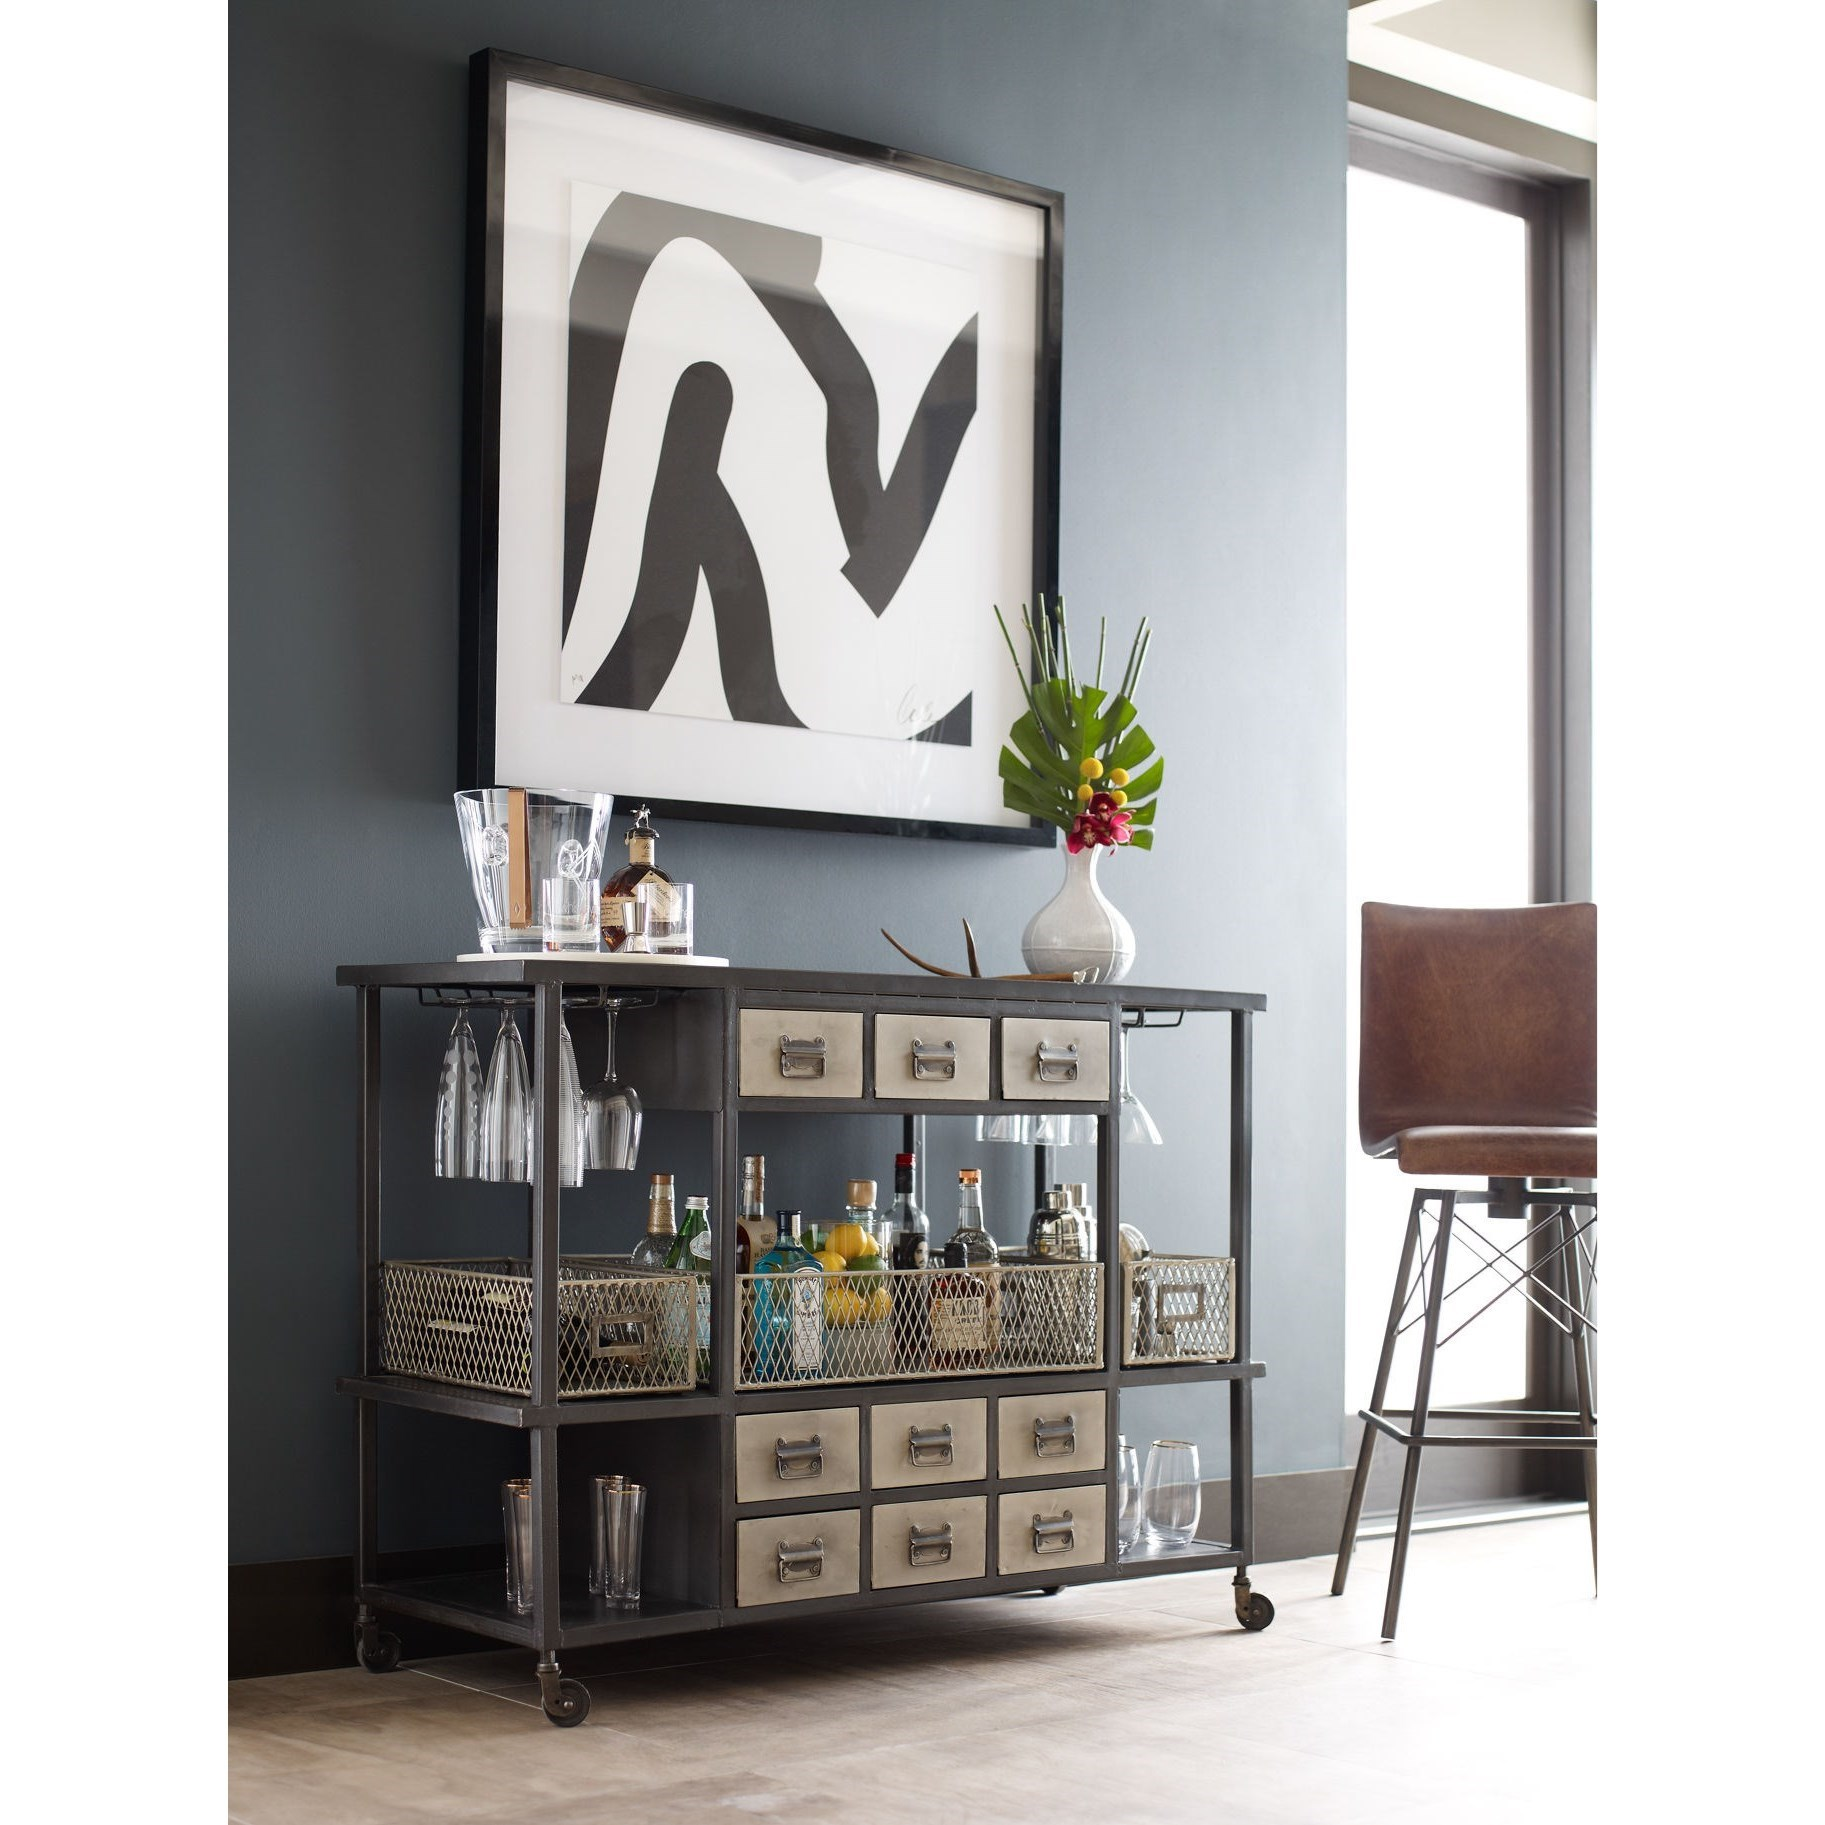 Industrial Bar Cart with Black Frame and Nickel Drawers by